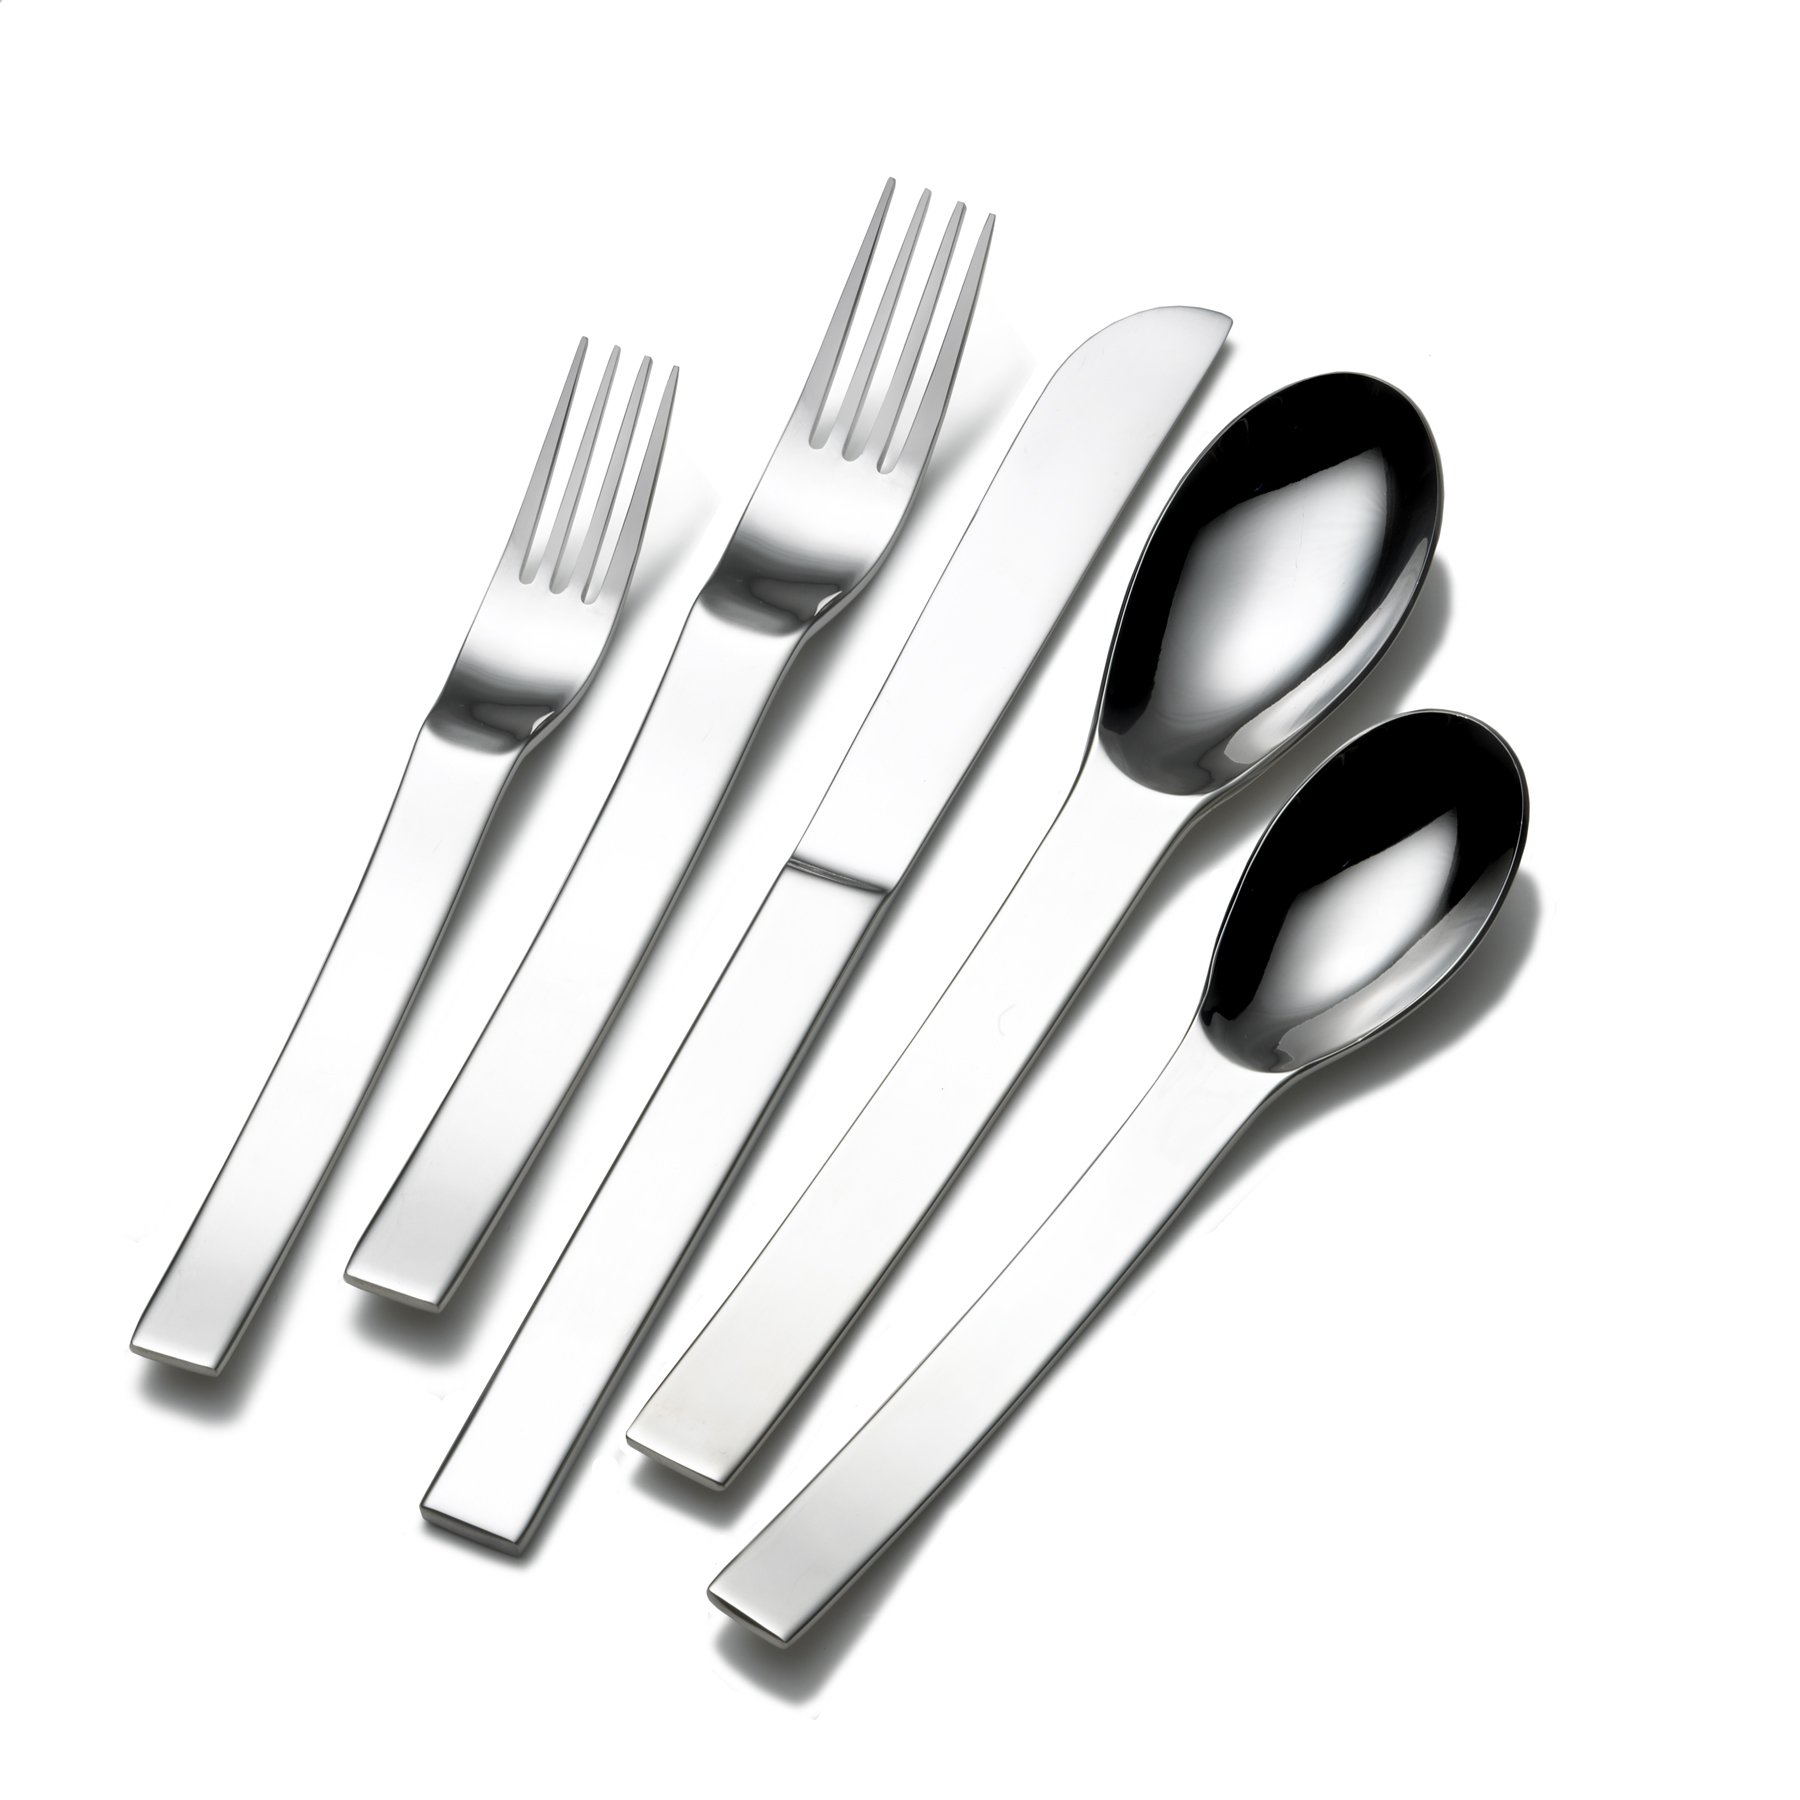 Sasaki 5081227 Aria 45-Piece Stainless Steel Flatware Set, Service for 8